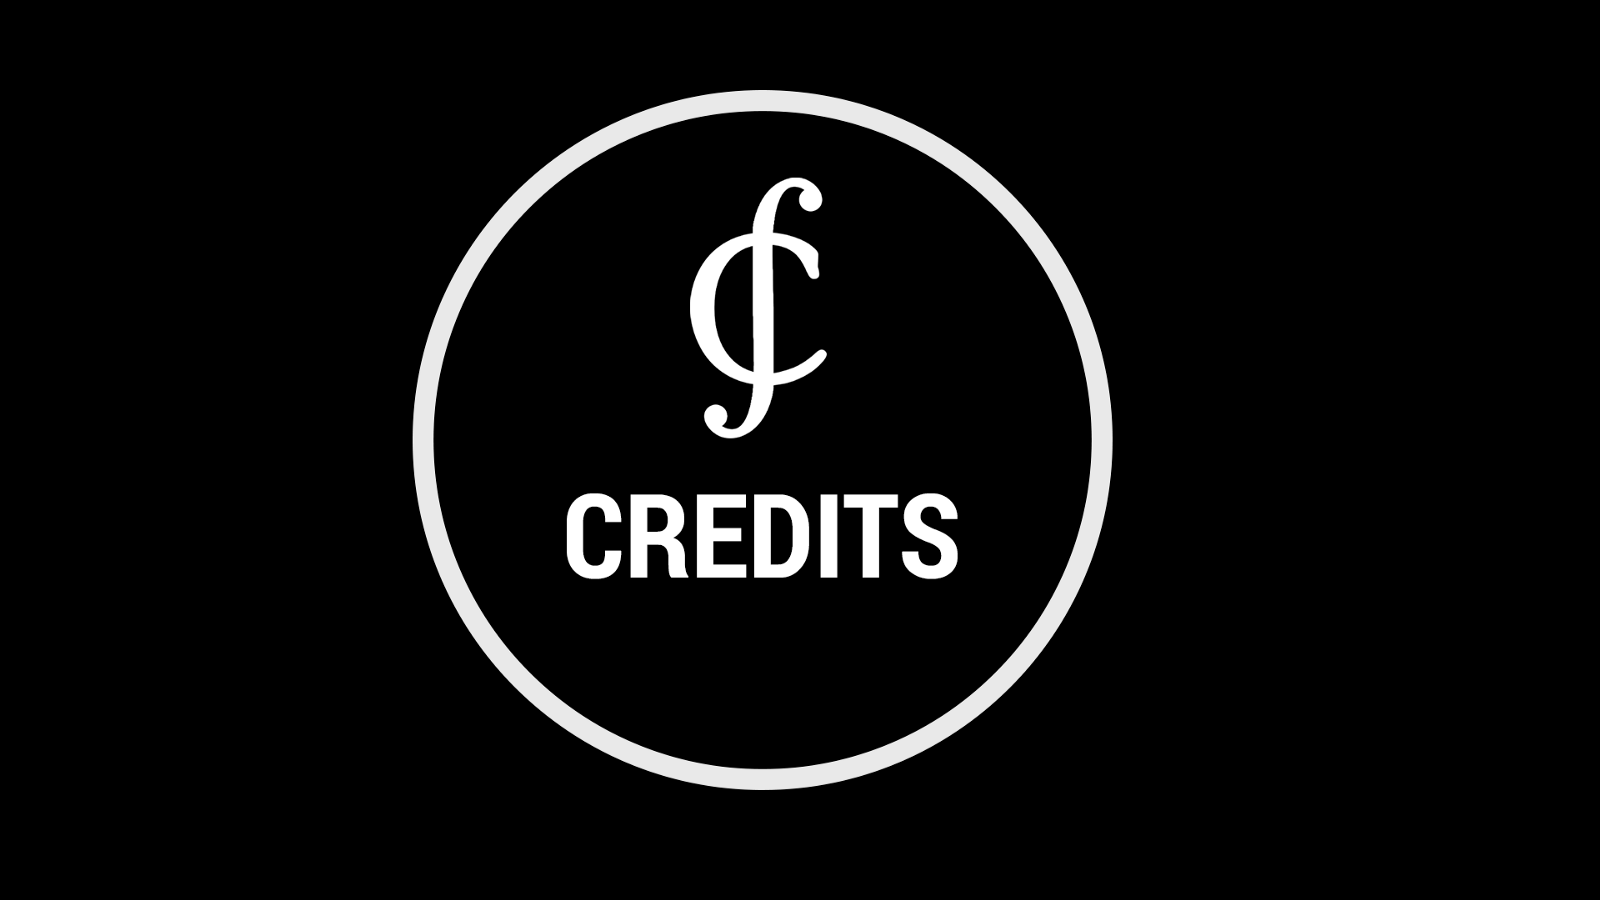 upcoming promising icos 3 credits cs ico a new lightning